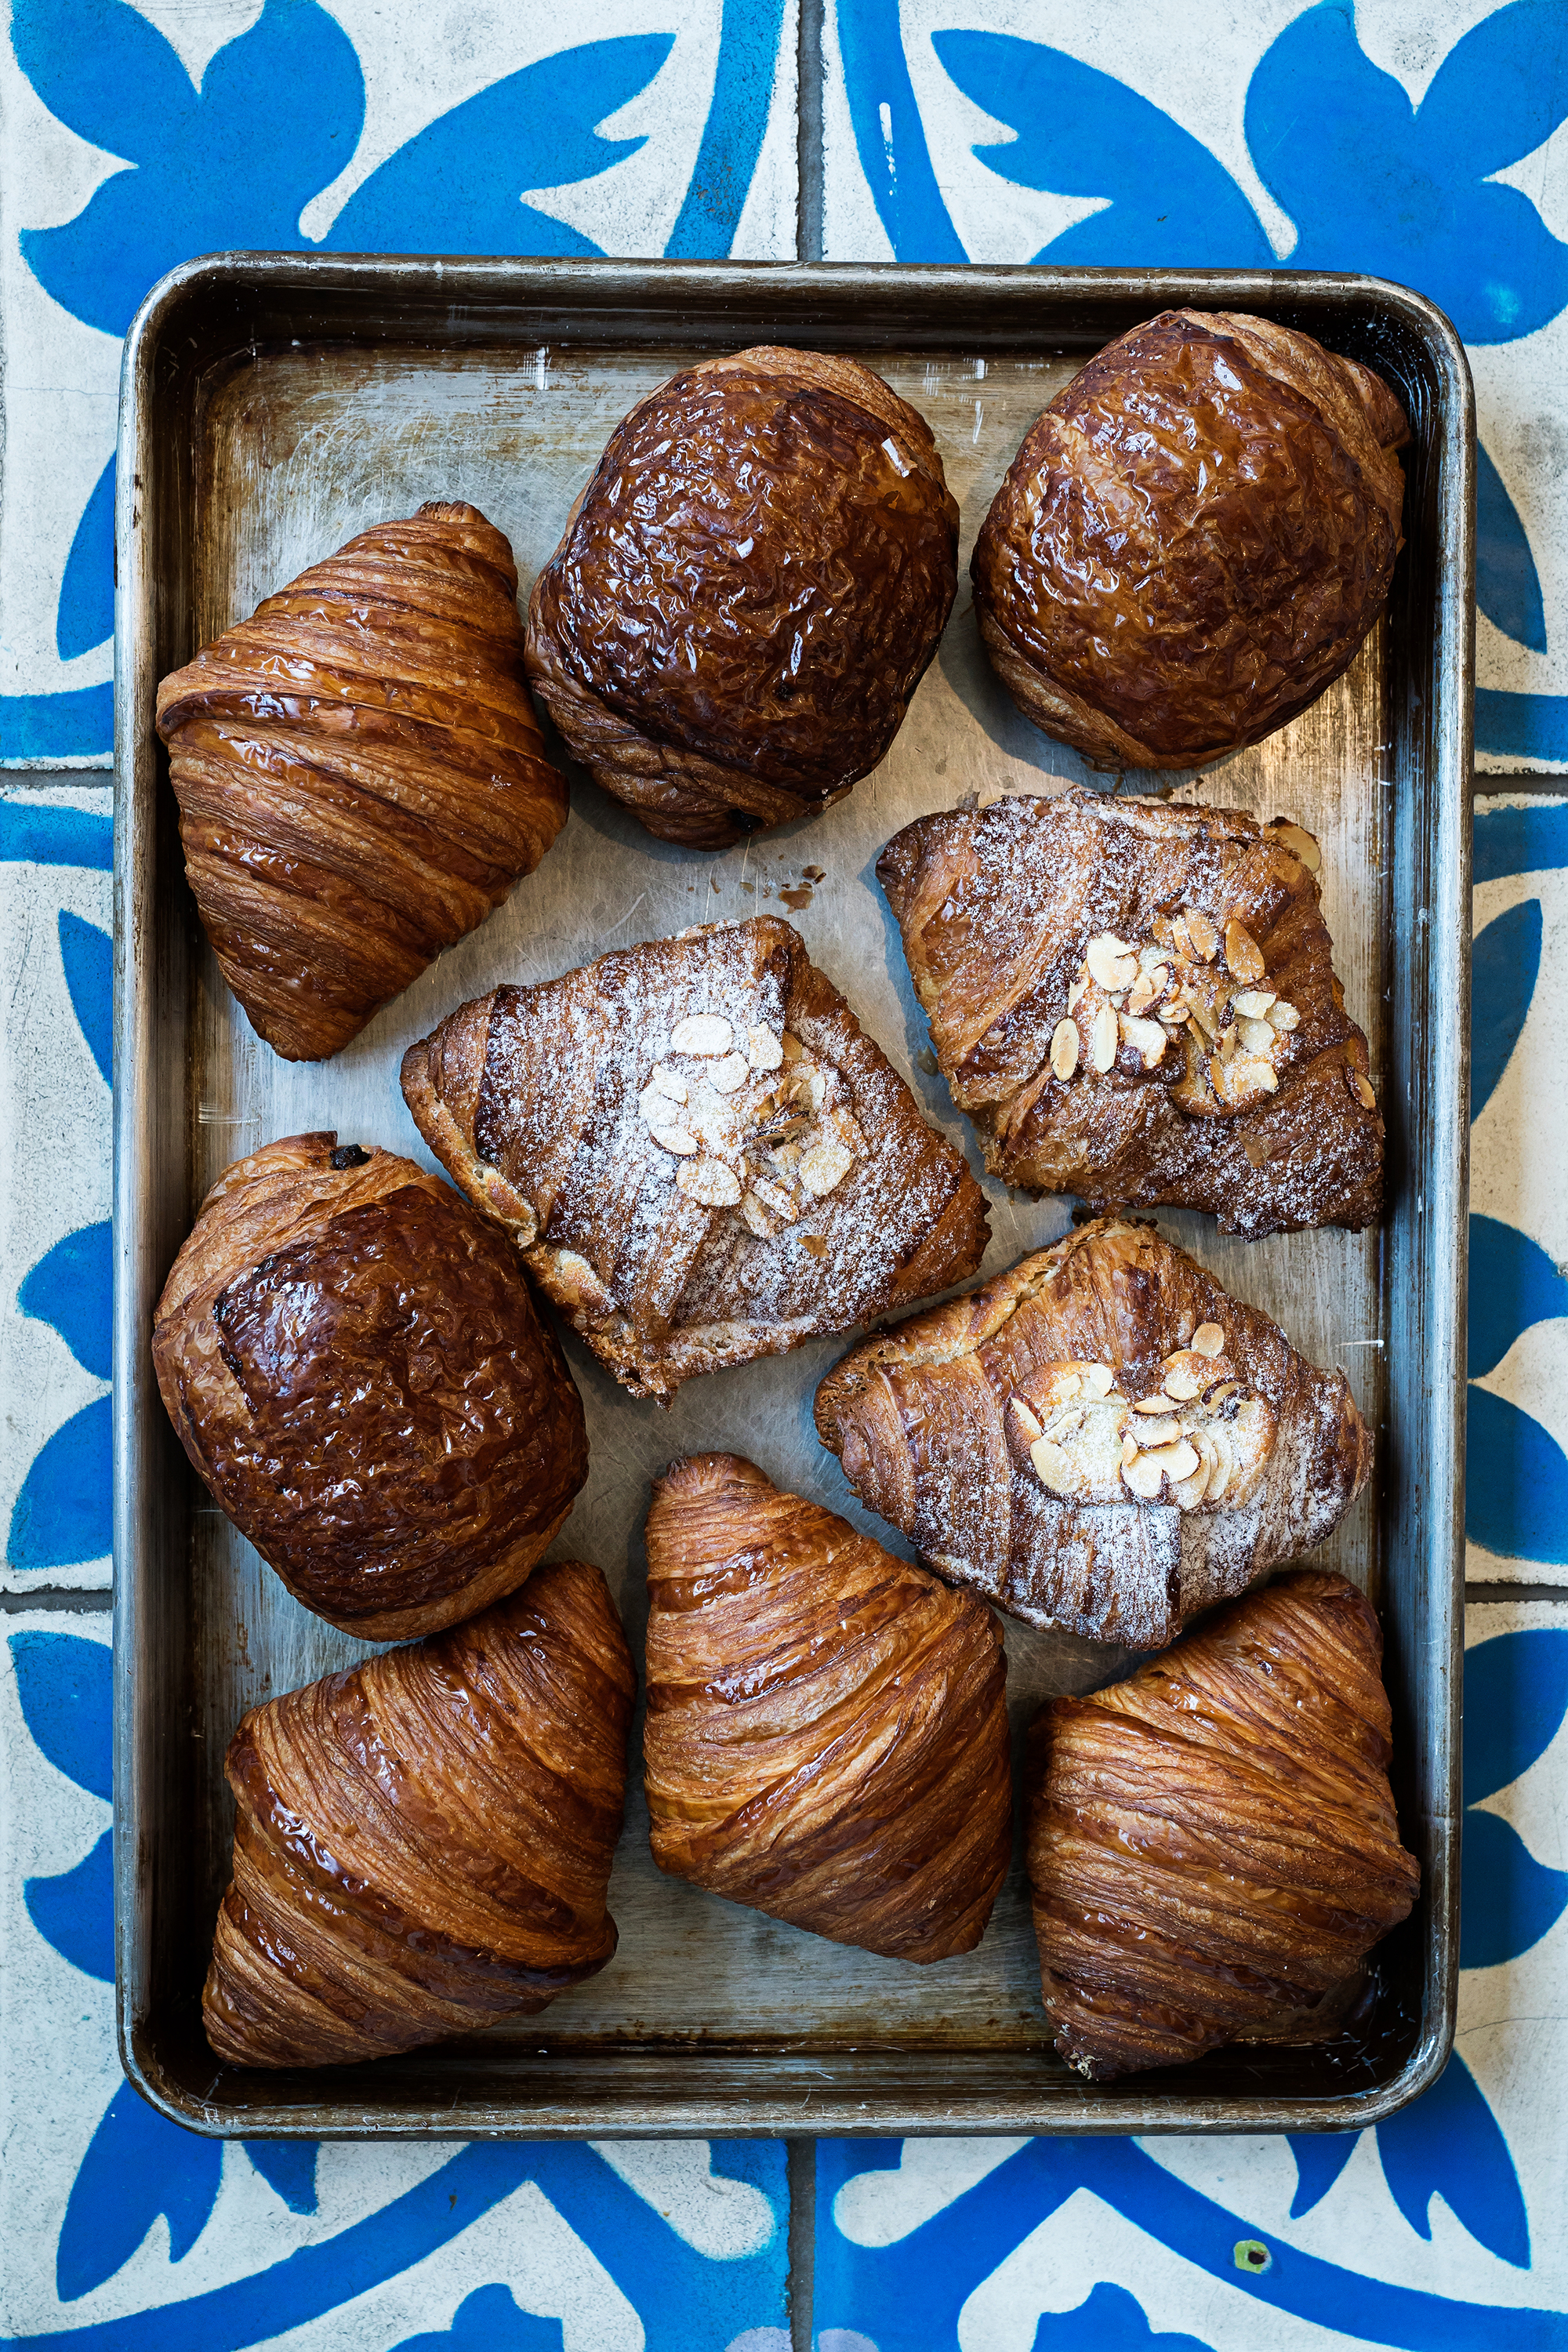 Butter, almond, and chocolate croissants at Pluma. Photograph by Scott Suchman.